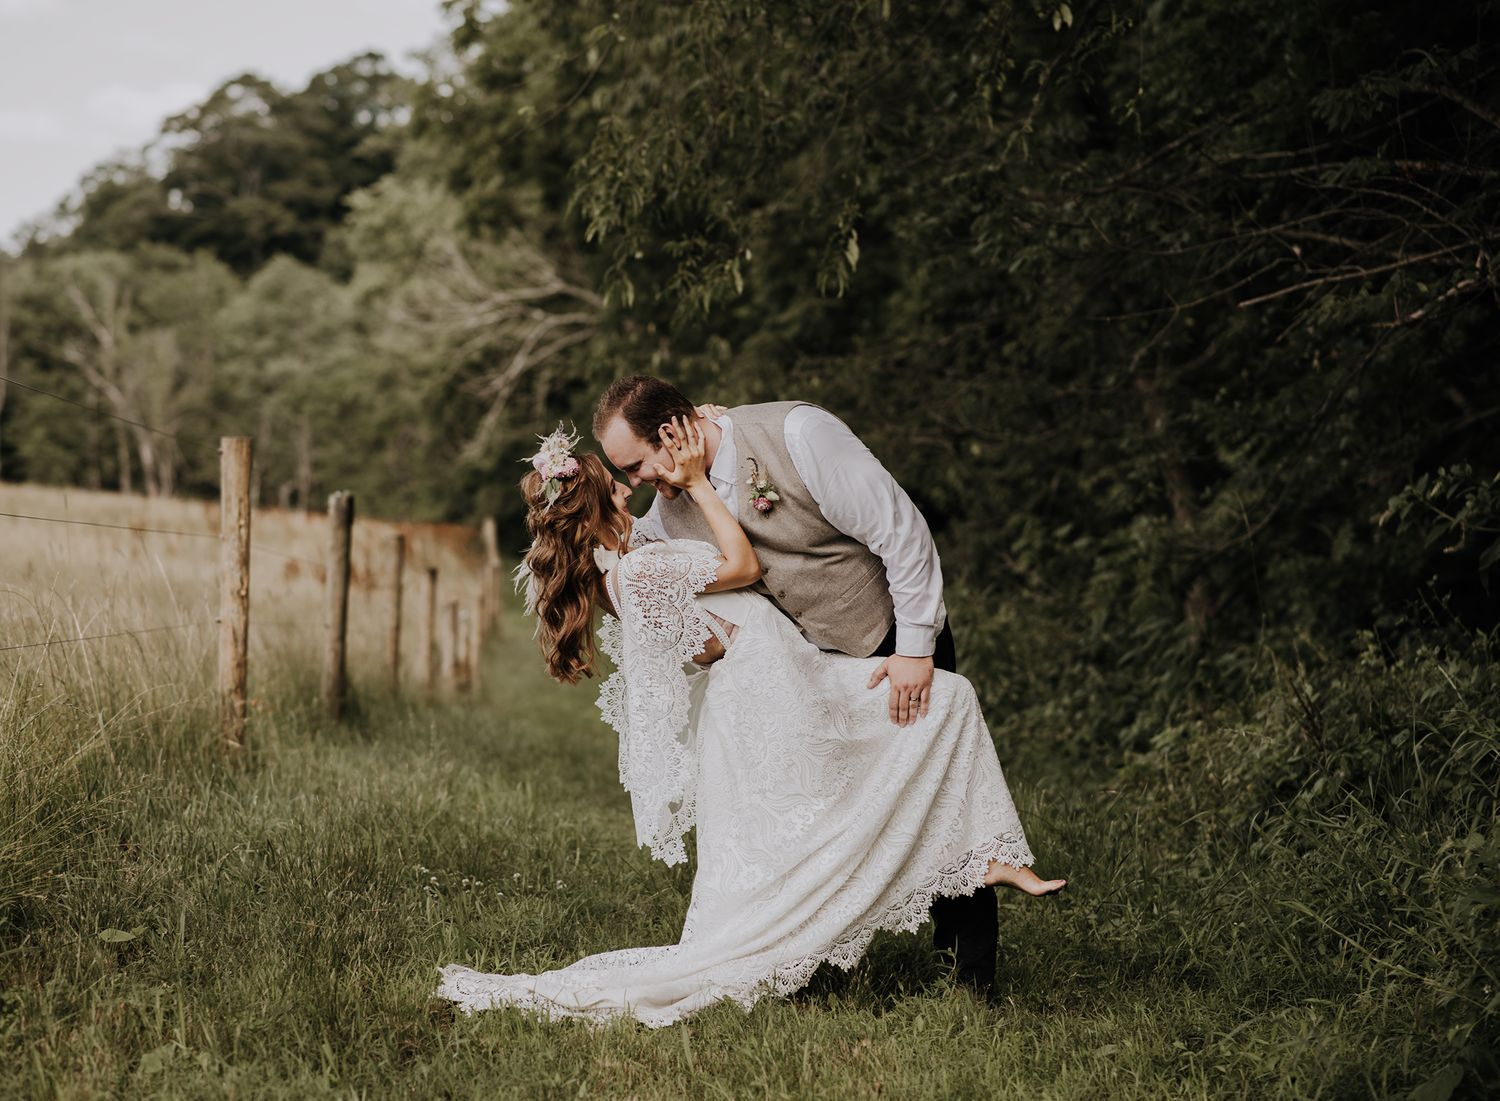 Medina, Ohio wedding photographer. Tucker Creek Farm